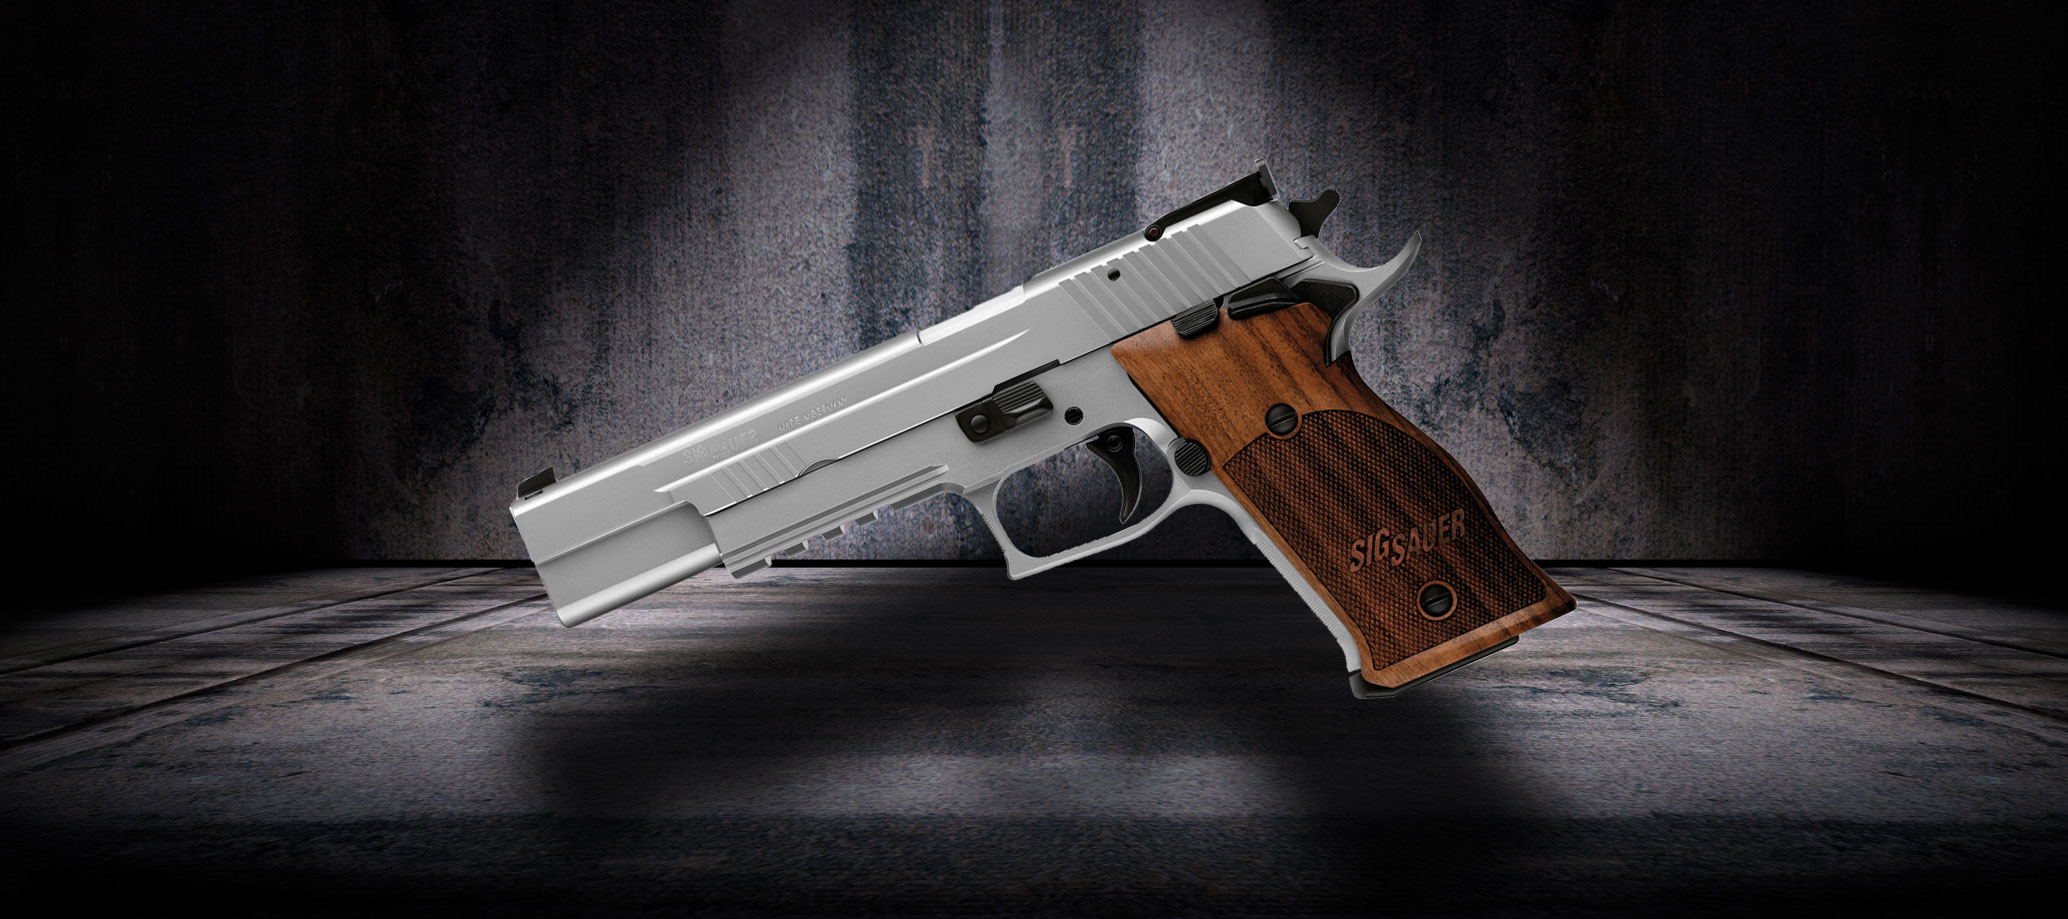 Test: SIG Sauer P220 X-Six Pistol in .45 ACP